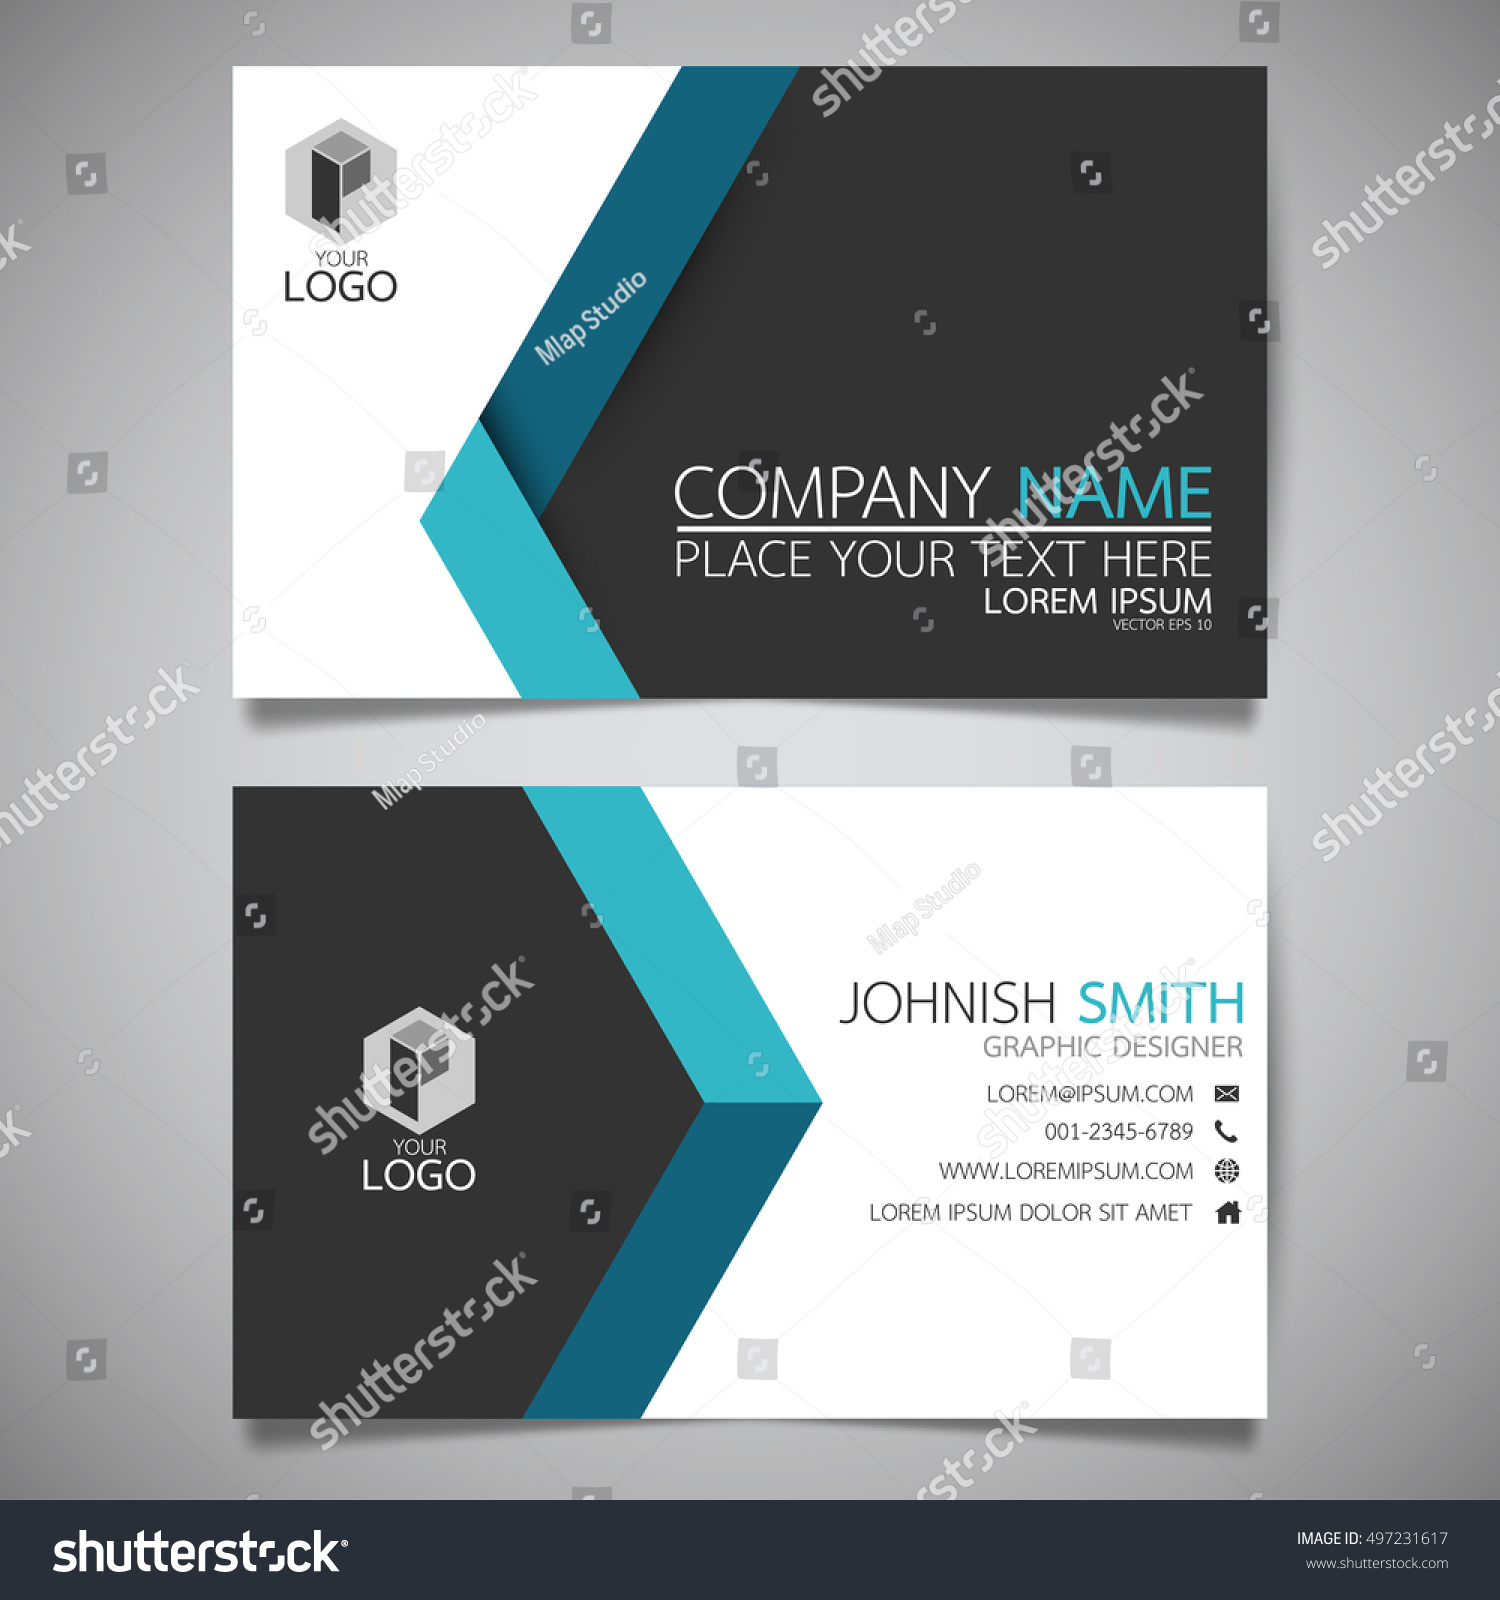 blue modern creative business card and name cardhorizontal simple clean template vector design